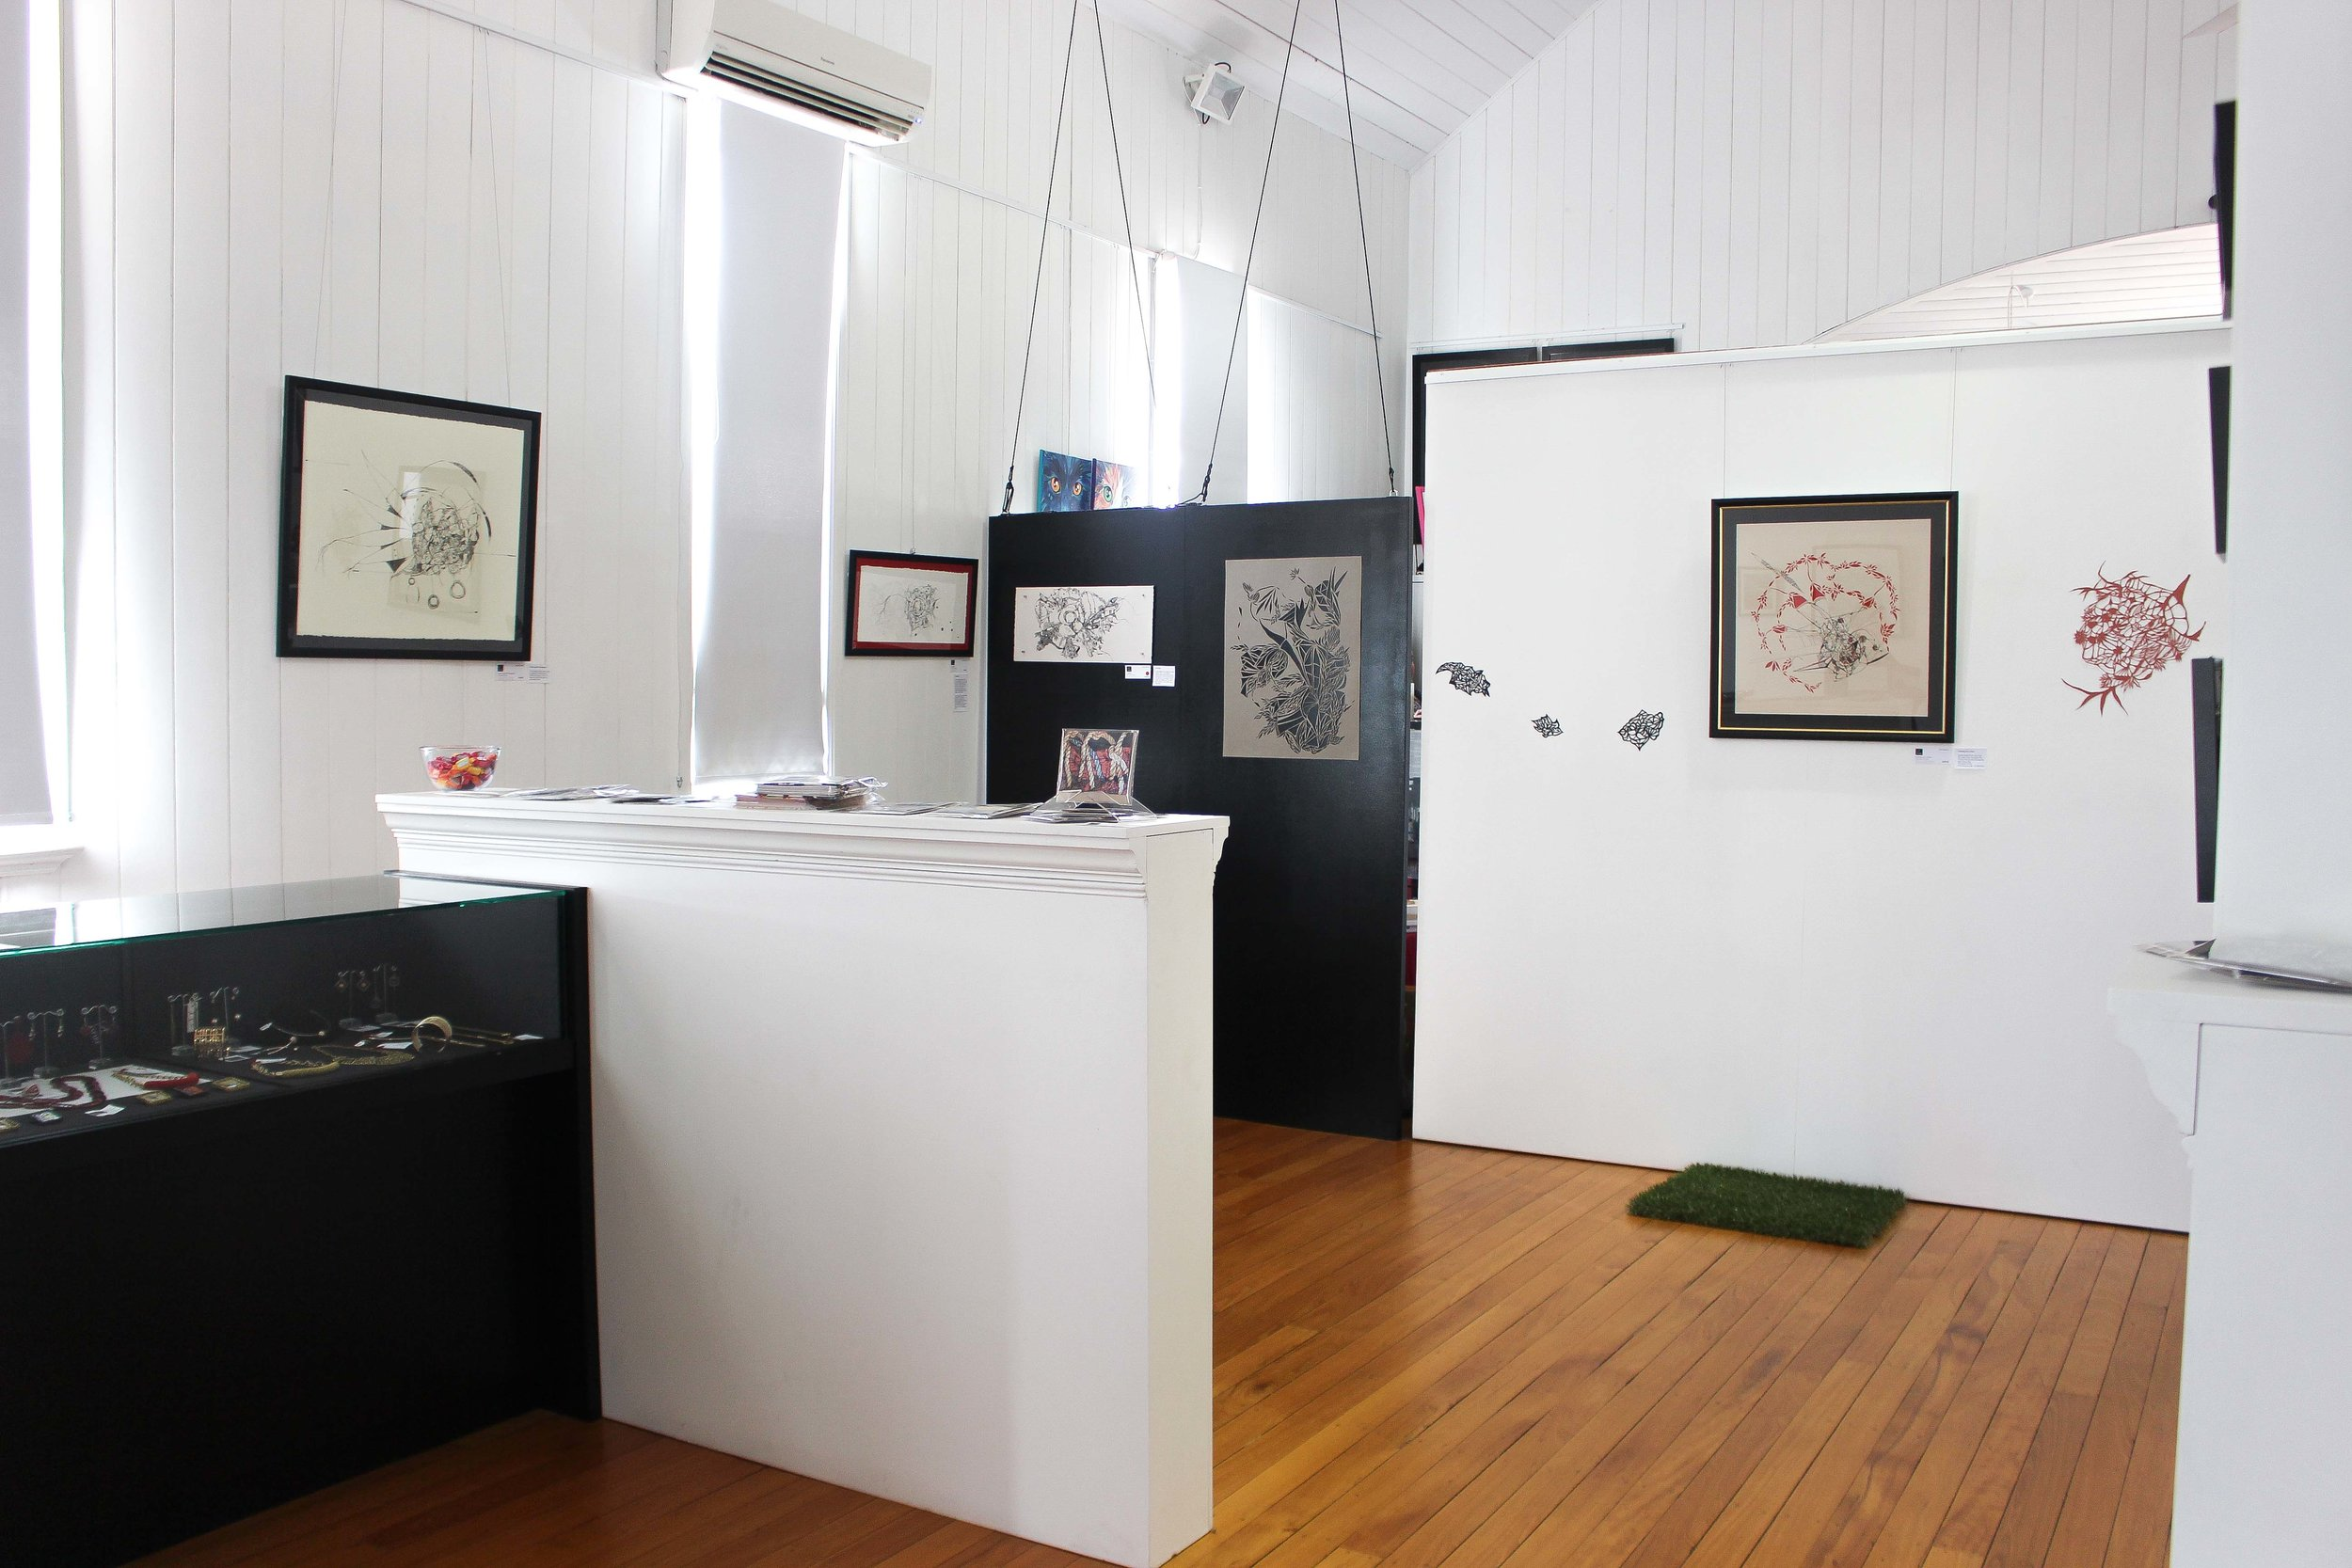 Aspire Gallery. Photography by Rochelle Blakelock